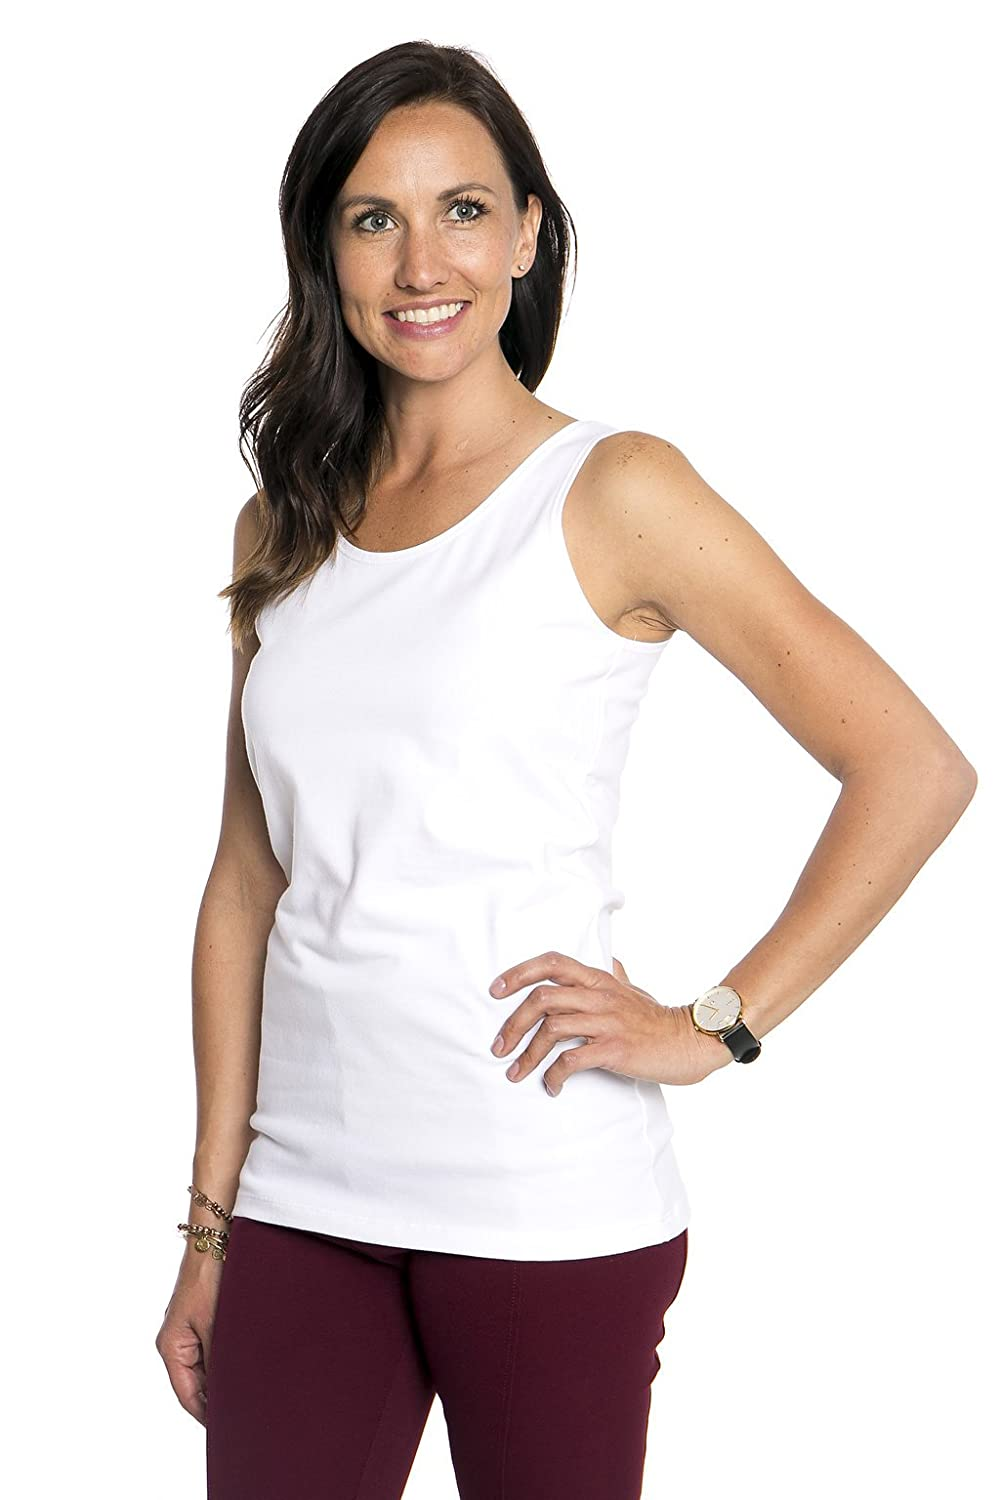 217de61c16378 Amazon.com  Heirloom Tank Top USA Made for Women Thick Strap Comfortable  Layering Shirt Dressy Or Active Wear  Clothing